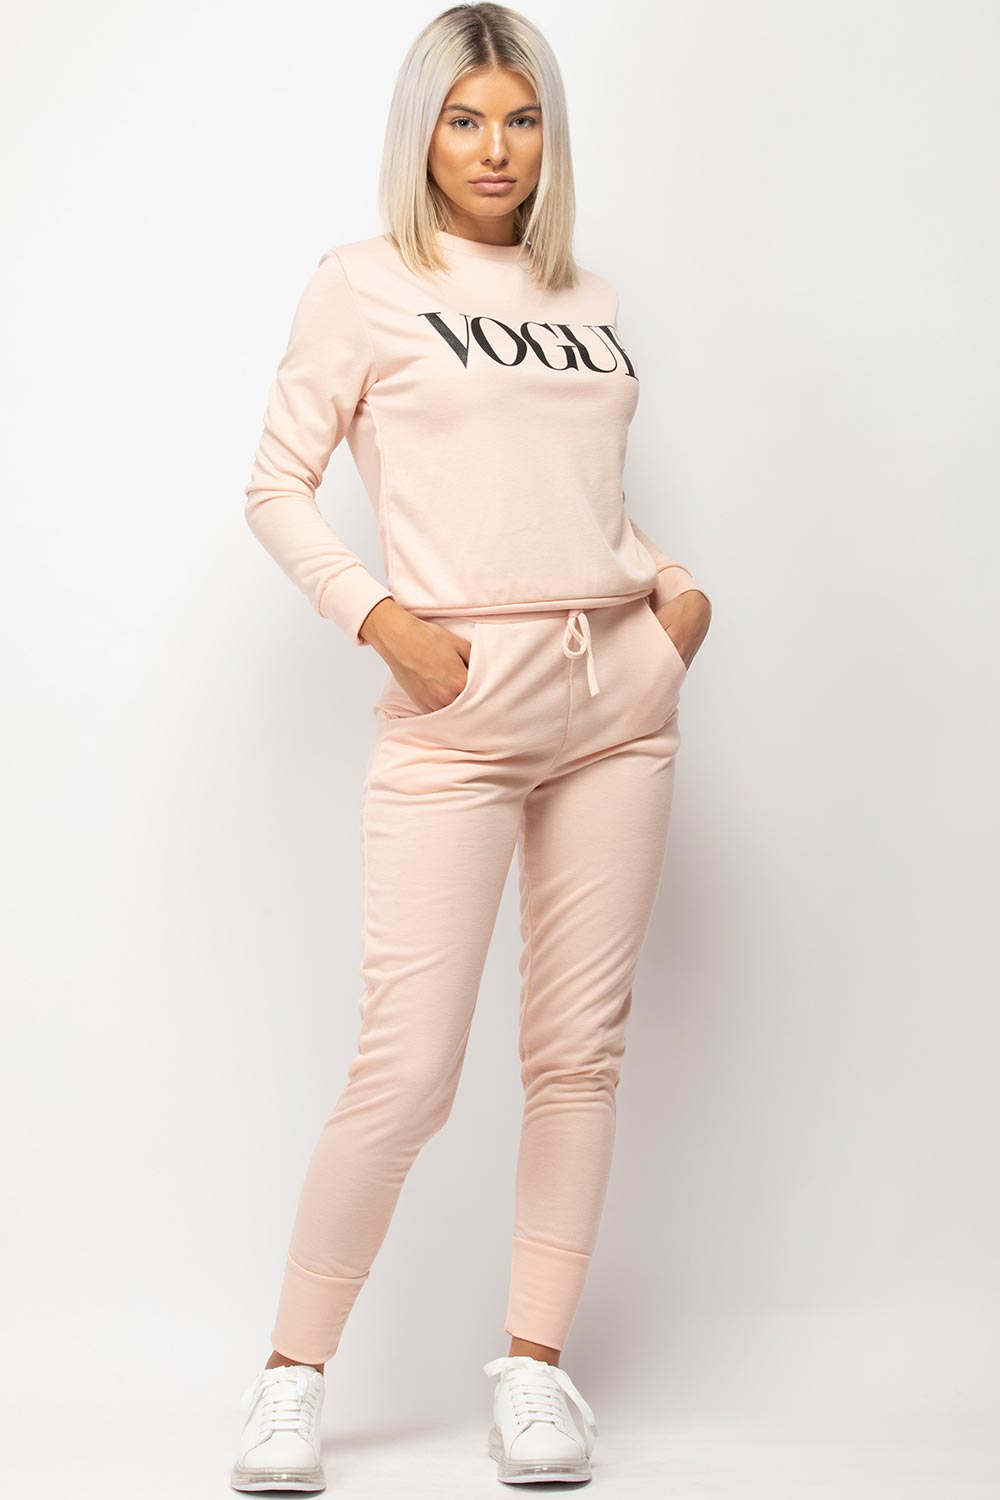 womens vogue loungewear set uk